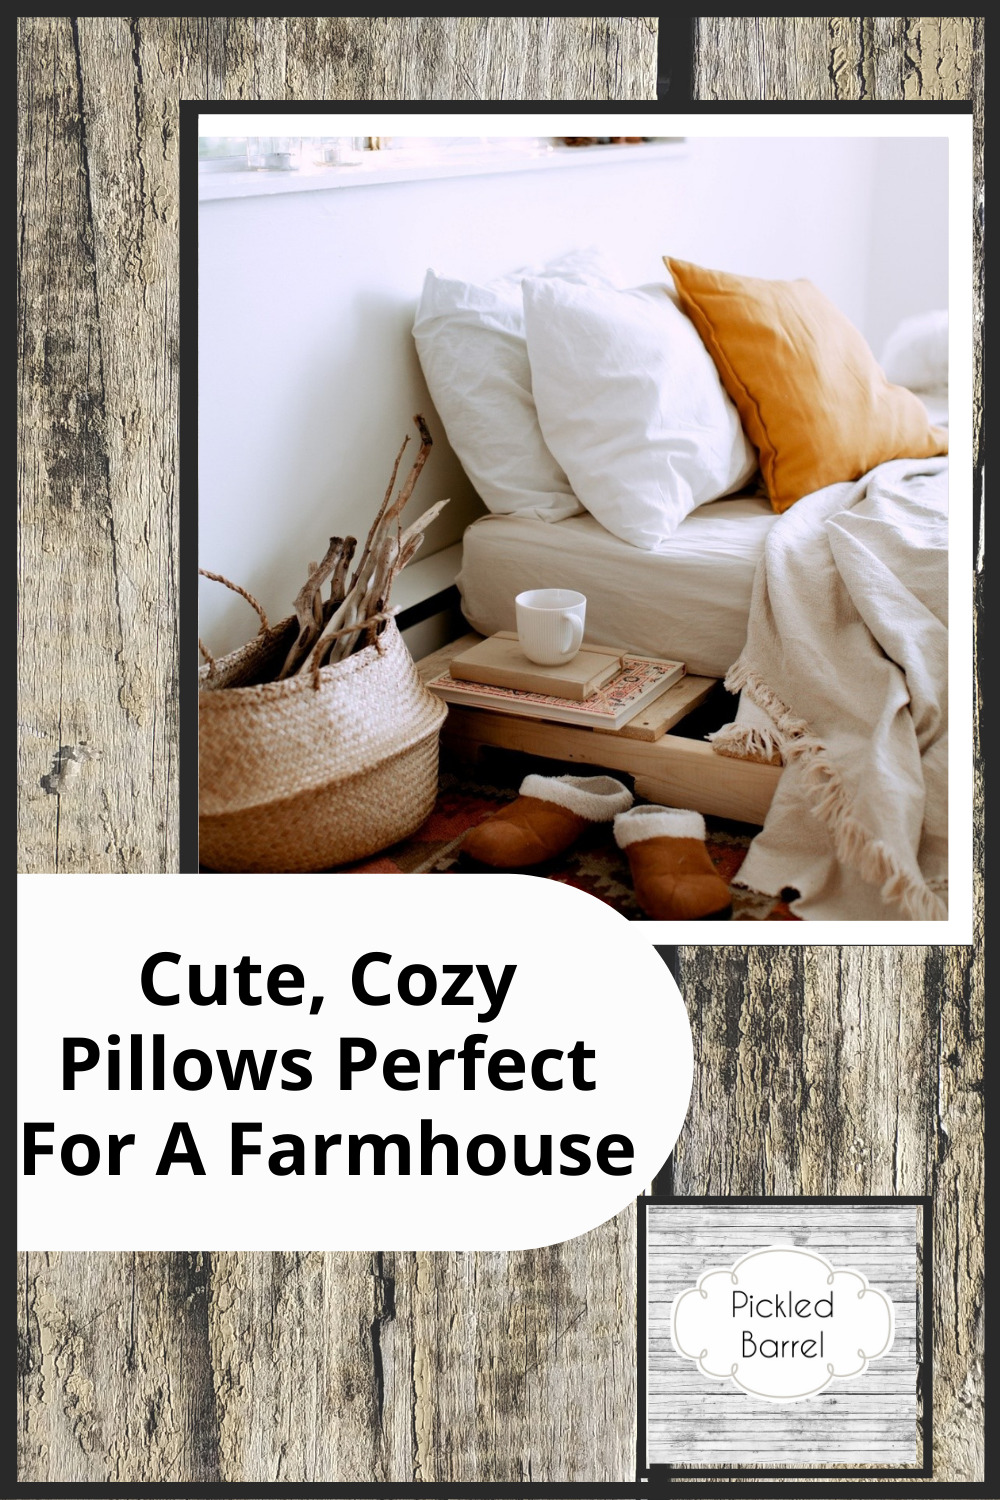 Pickledbarrel.com has perfectly quaint and rustic ideas for a farmhouse home. Find fresh, new decor ideas to spruce up your space. These throw pillow ideas are absolutely perfect for a farmhouse style living room!